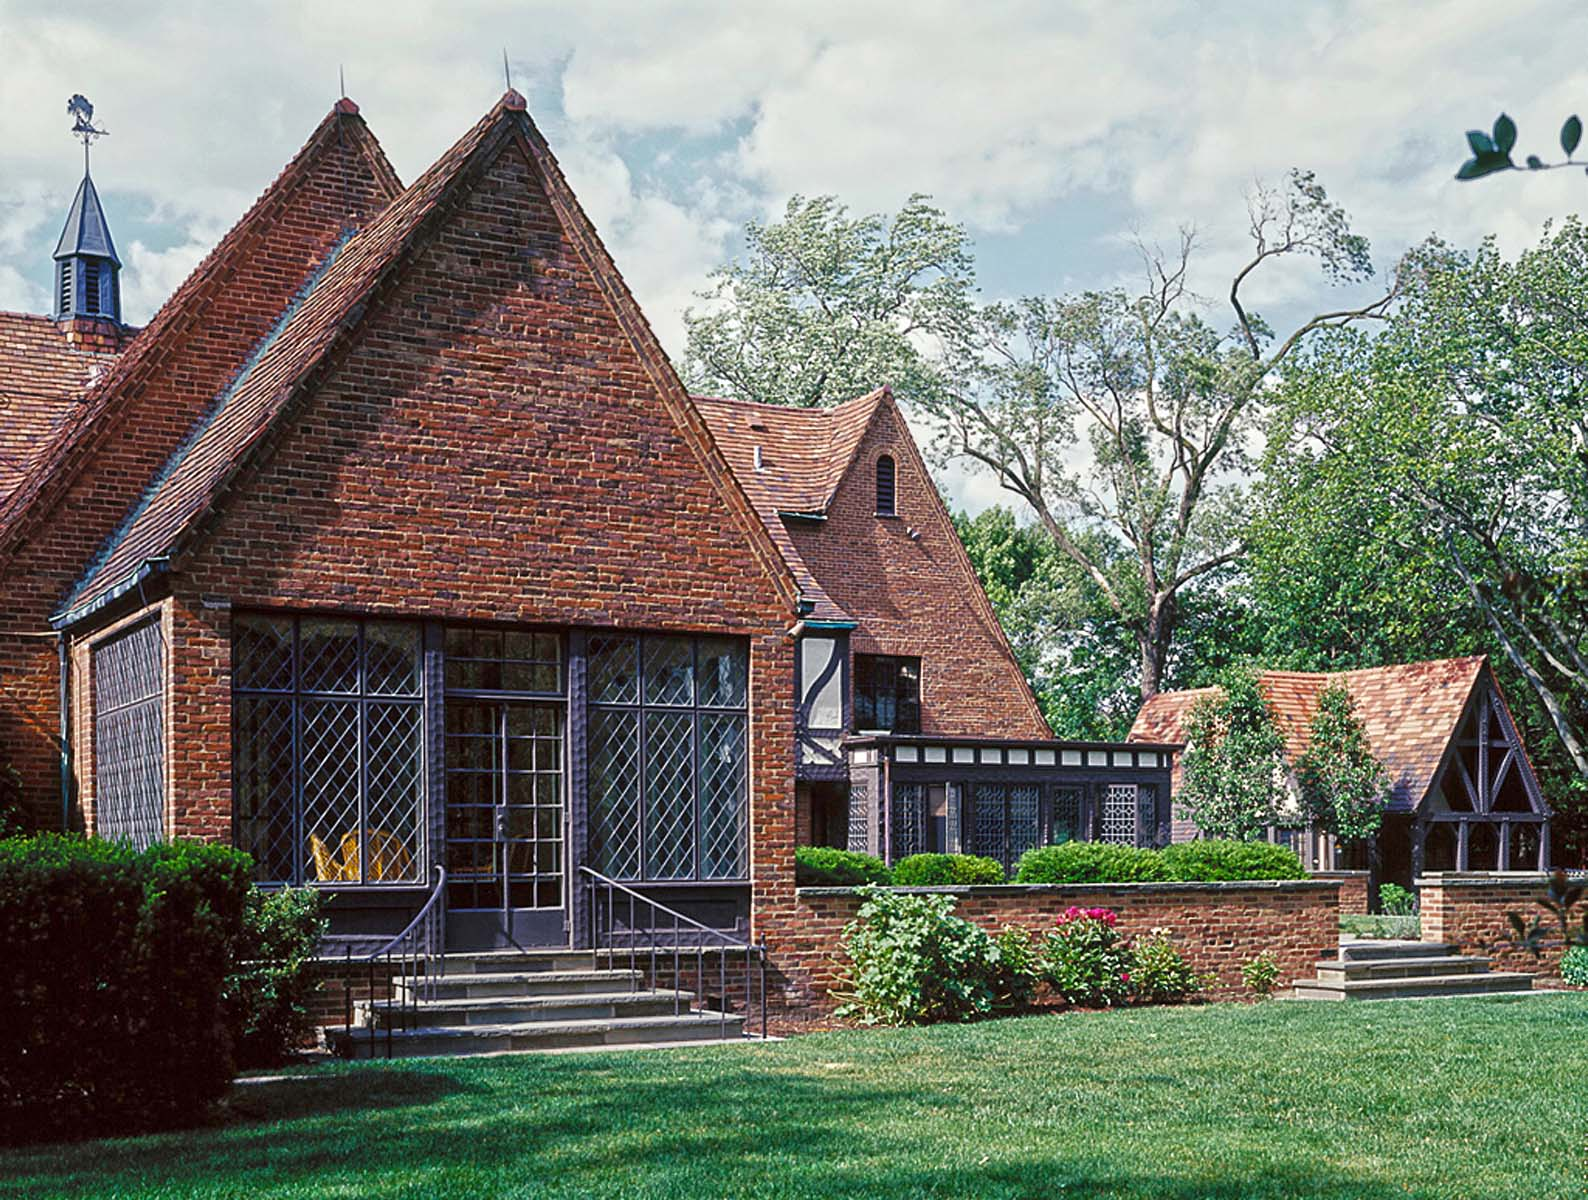 005_Historic_Beman_House.jpg